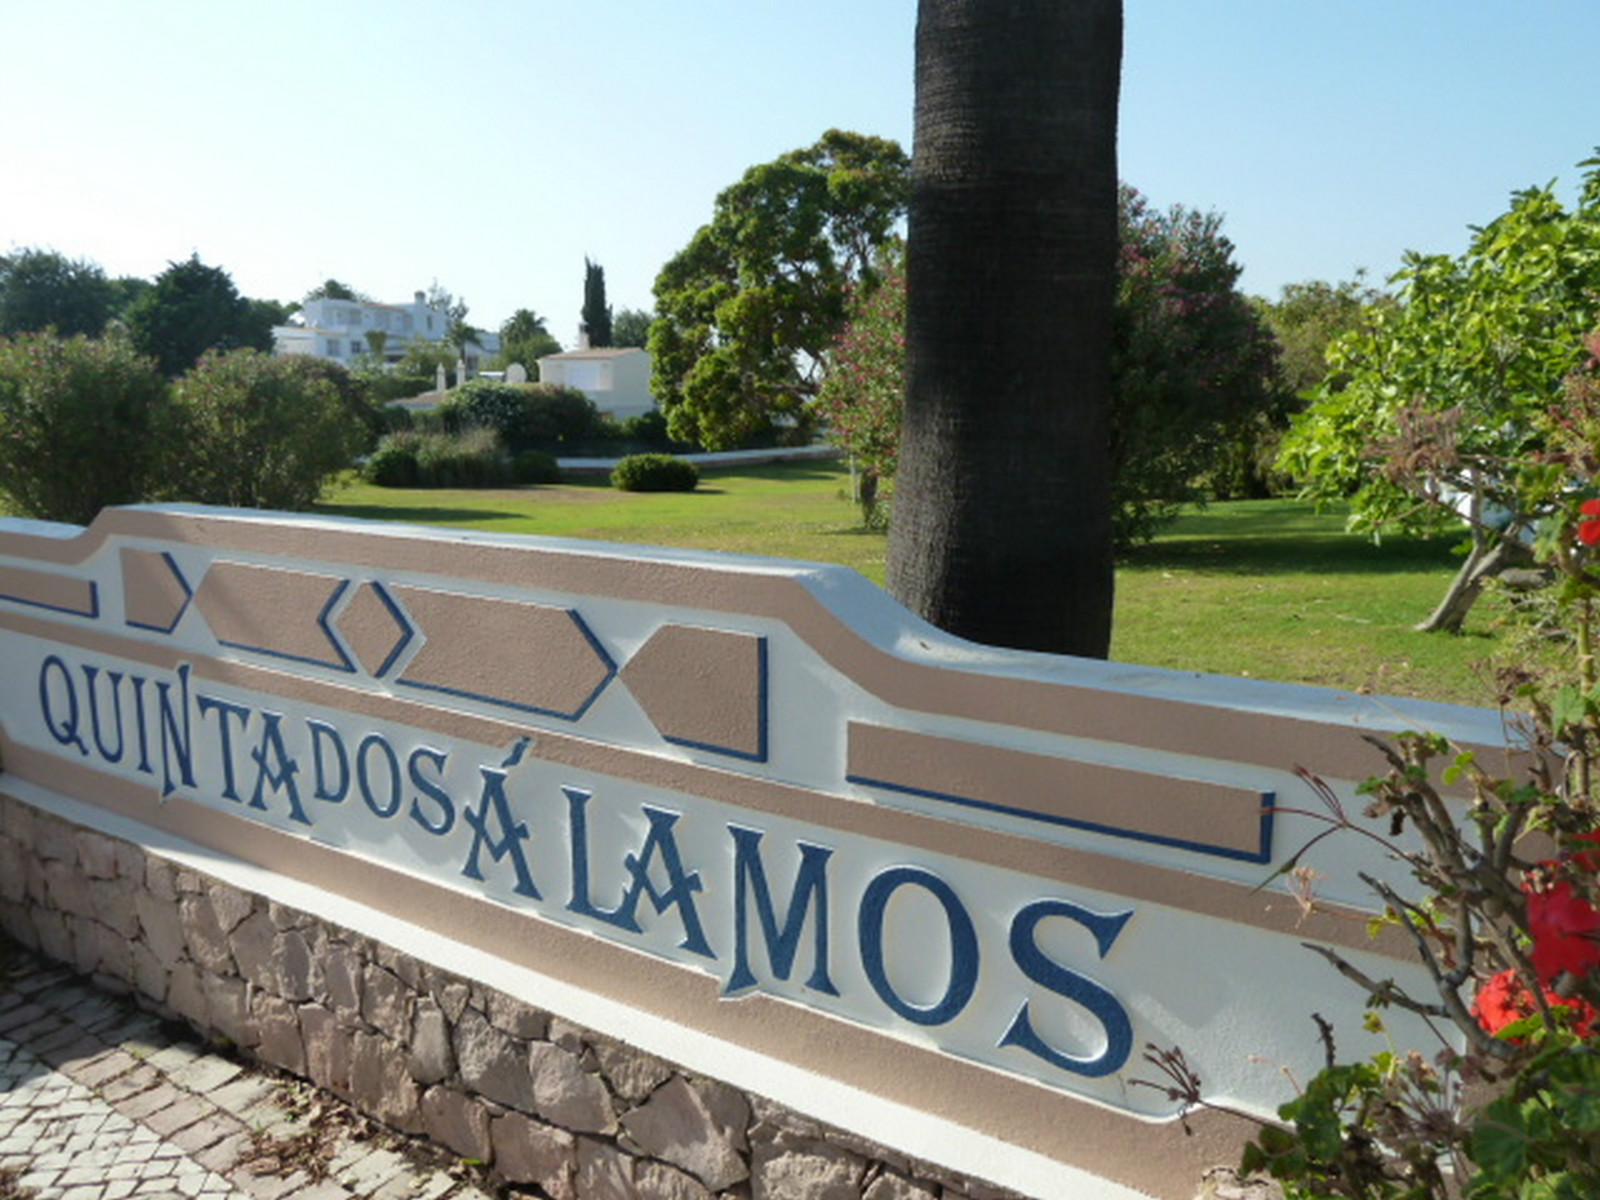 Beautiful Quinta dos Alamos is a joy of a place to stay with many green areas.